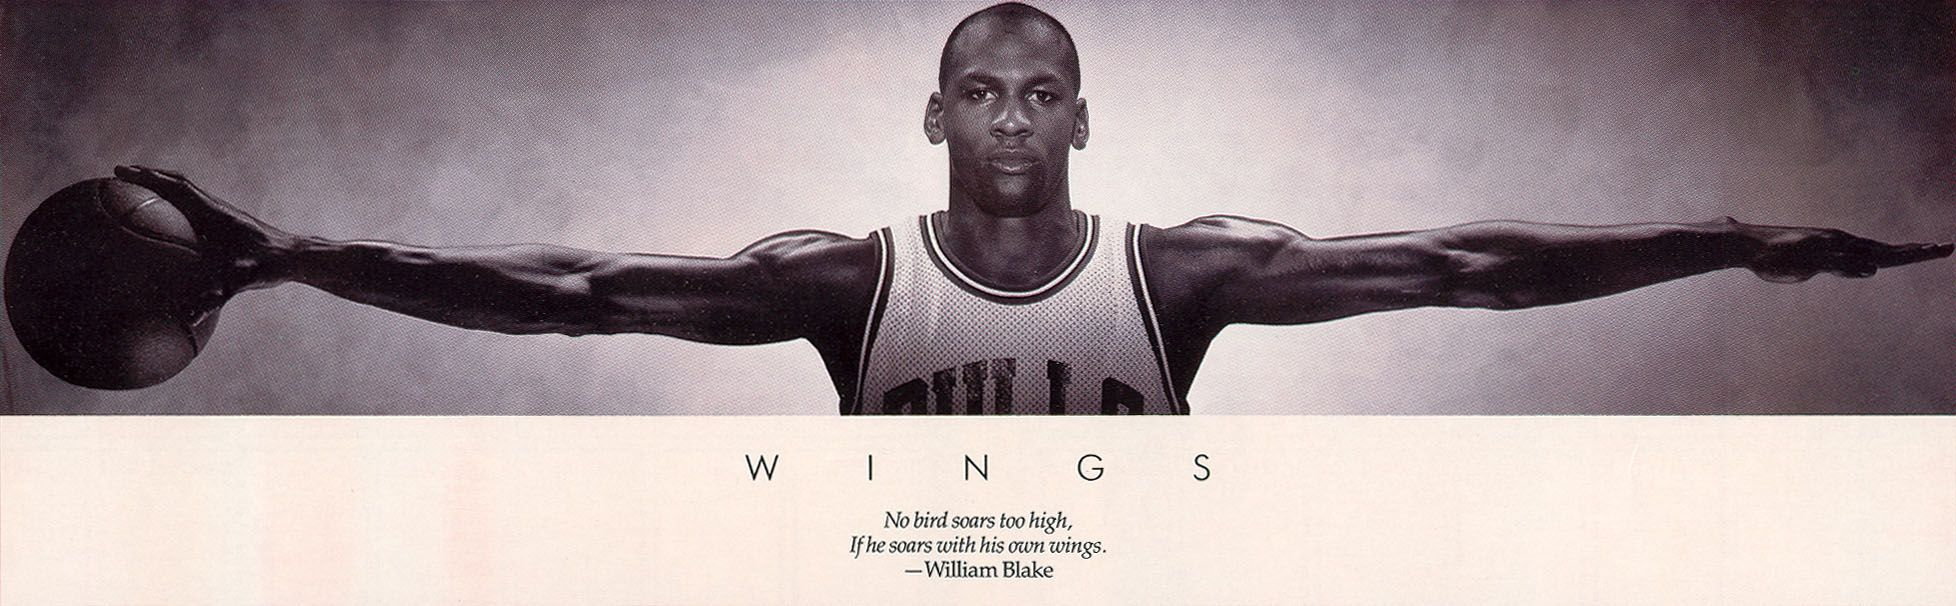 Did You Know The Jordan Wings Poster Is The Best Selling In Nike